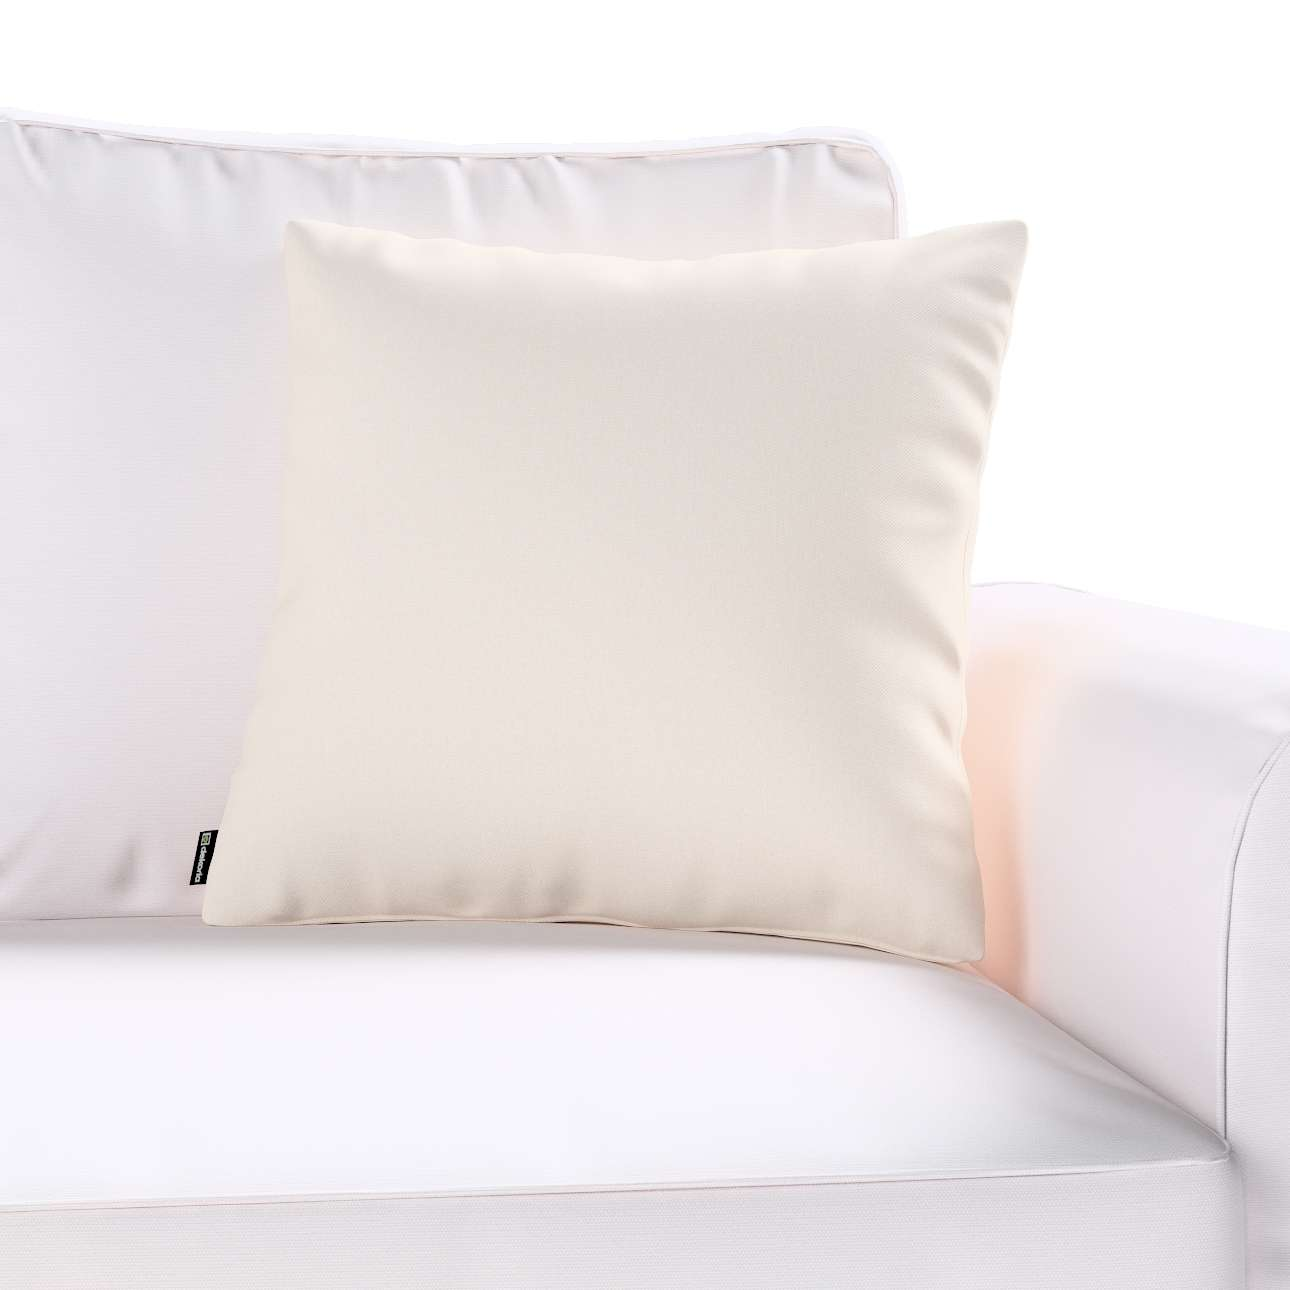 Kinga cushion cover in collection Etna, fabric: 705-01